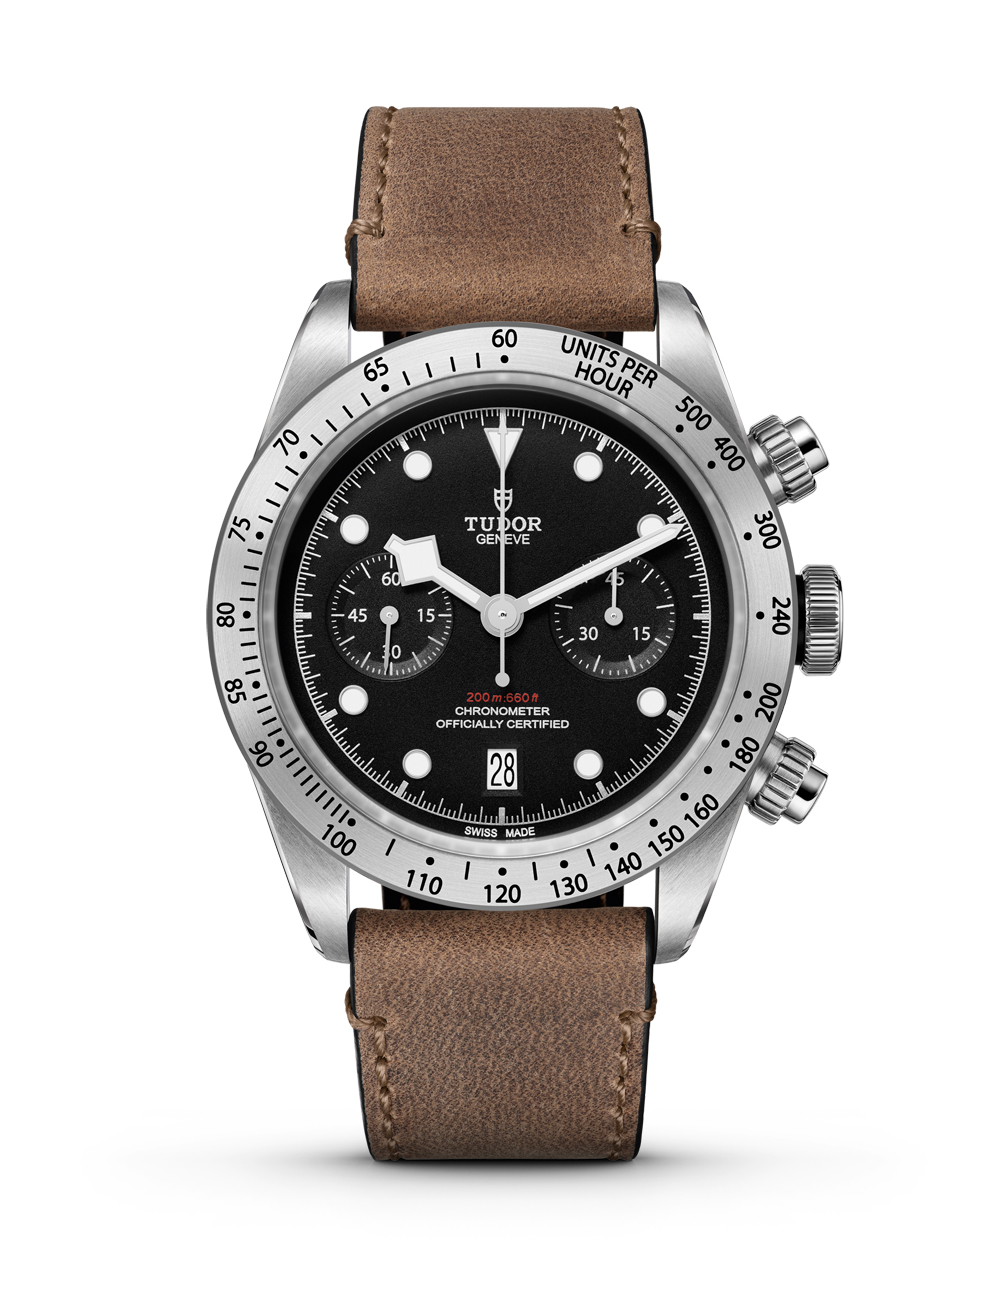 Tudor Black Bay Chronograph - leather strap - soldier